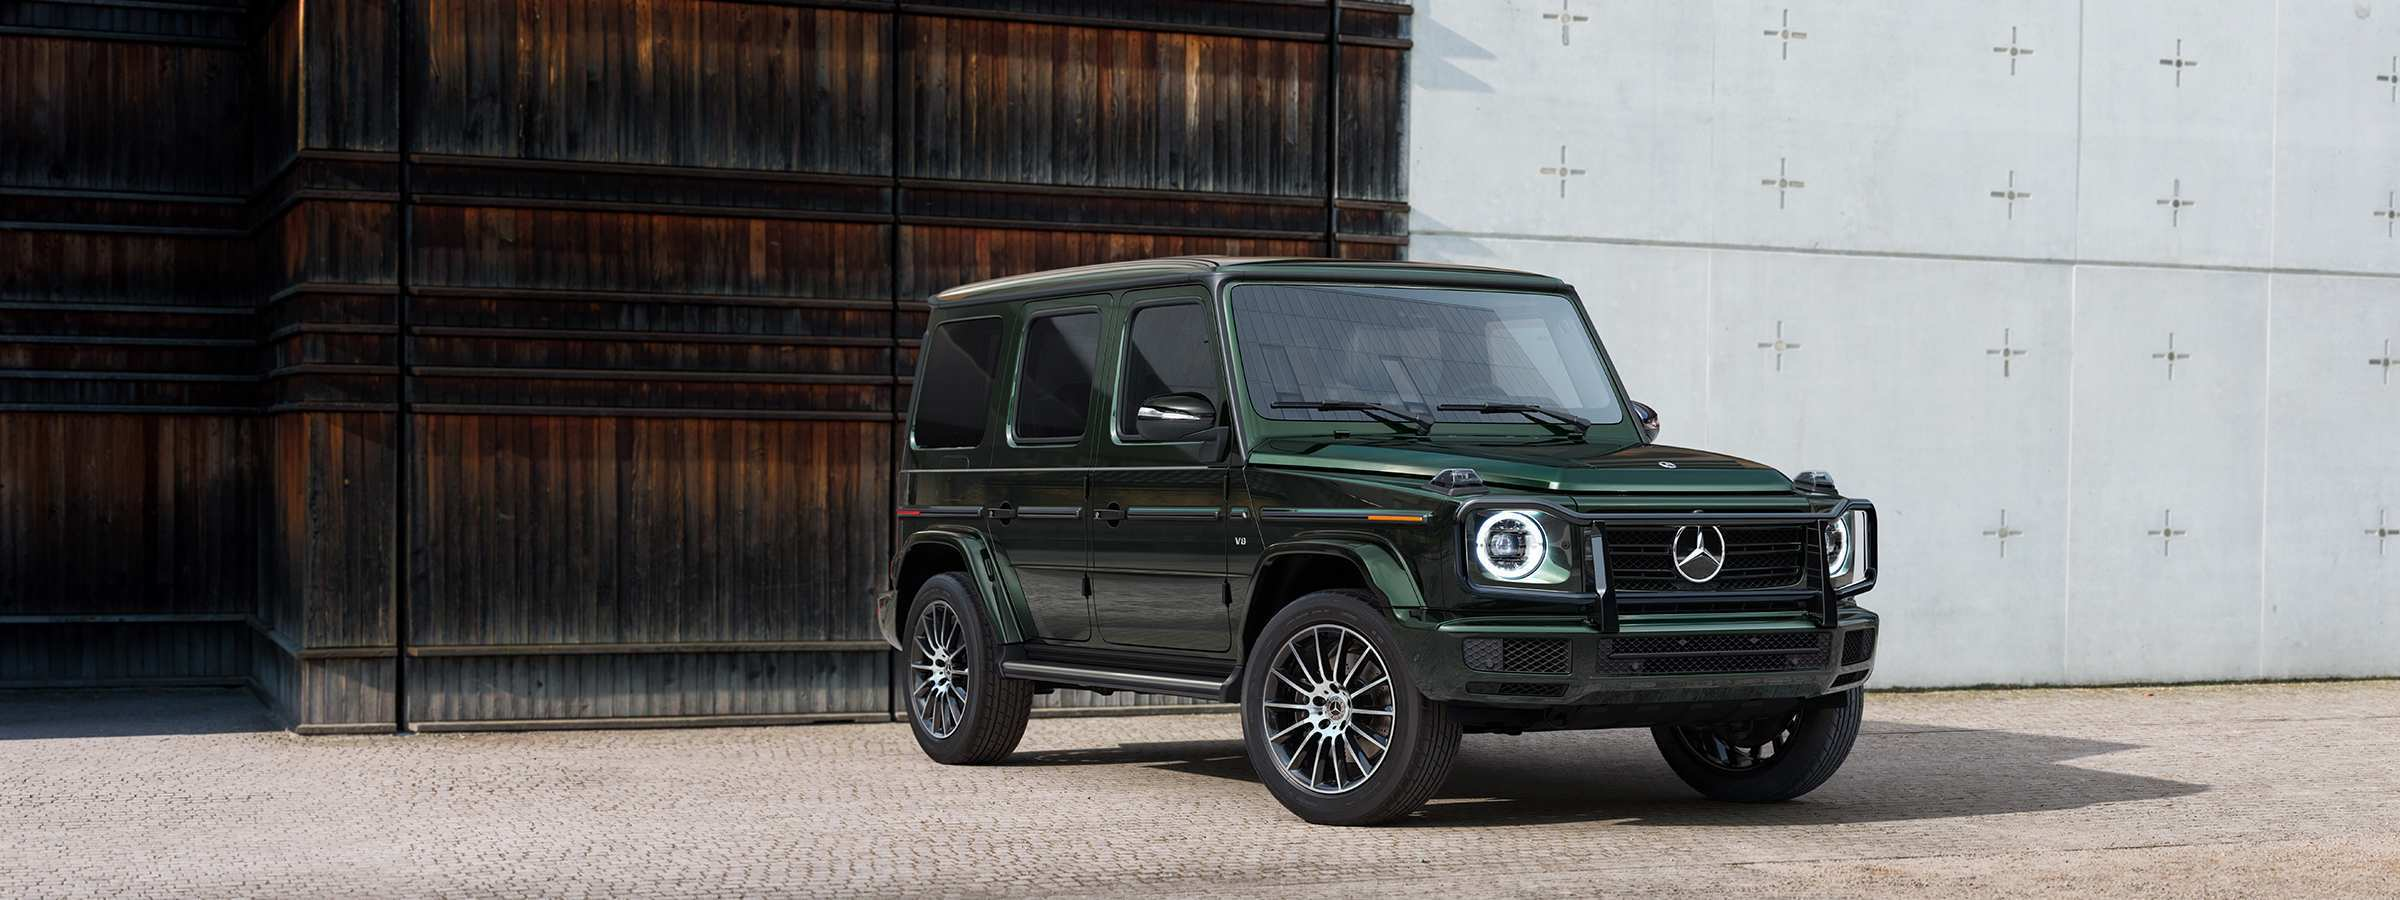 87 Great 2019 Mercedes G Wagon For Sale Price Pricing by 2019 Mercedes G Wagon For Sale Price